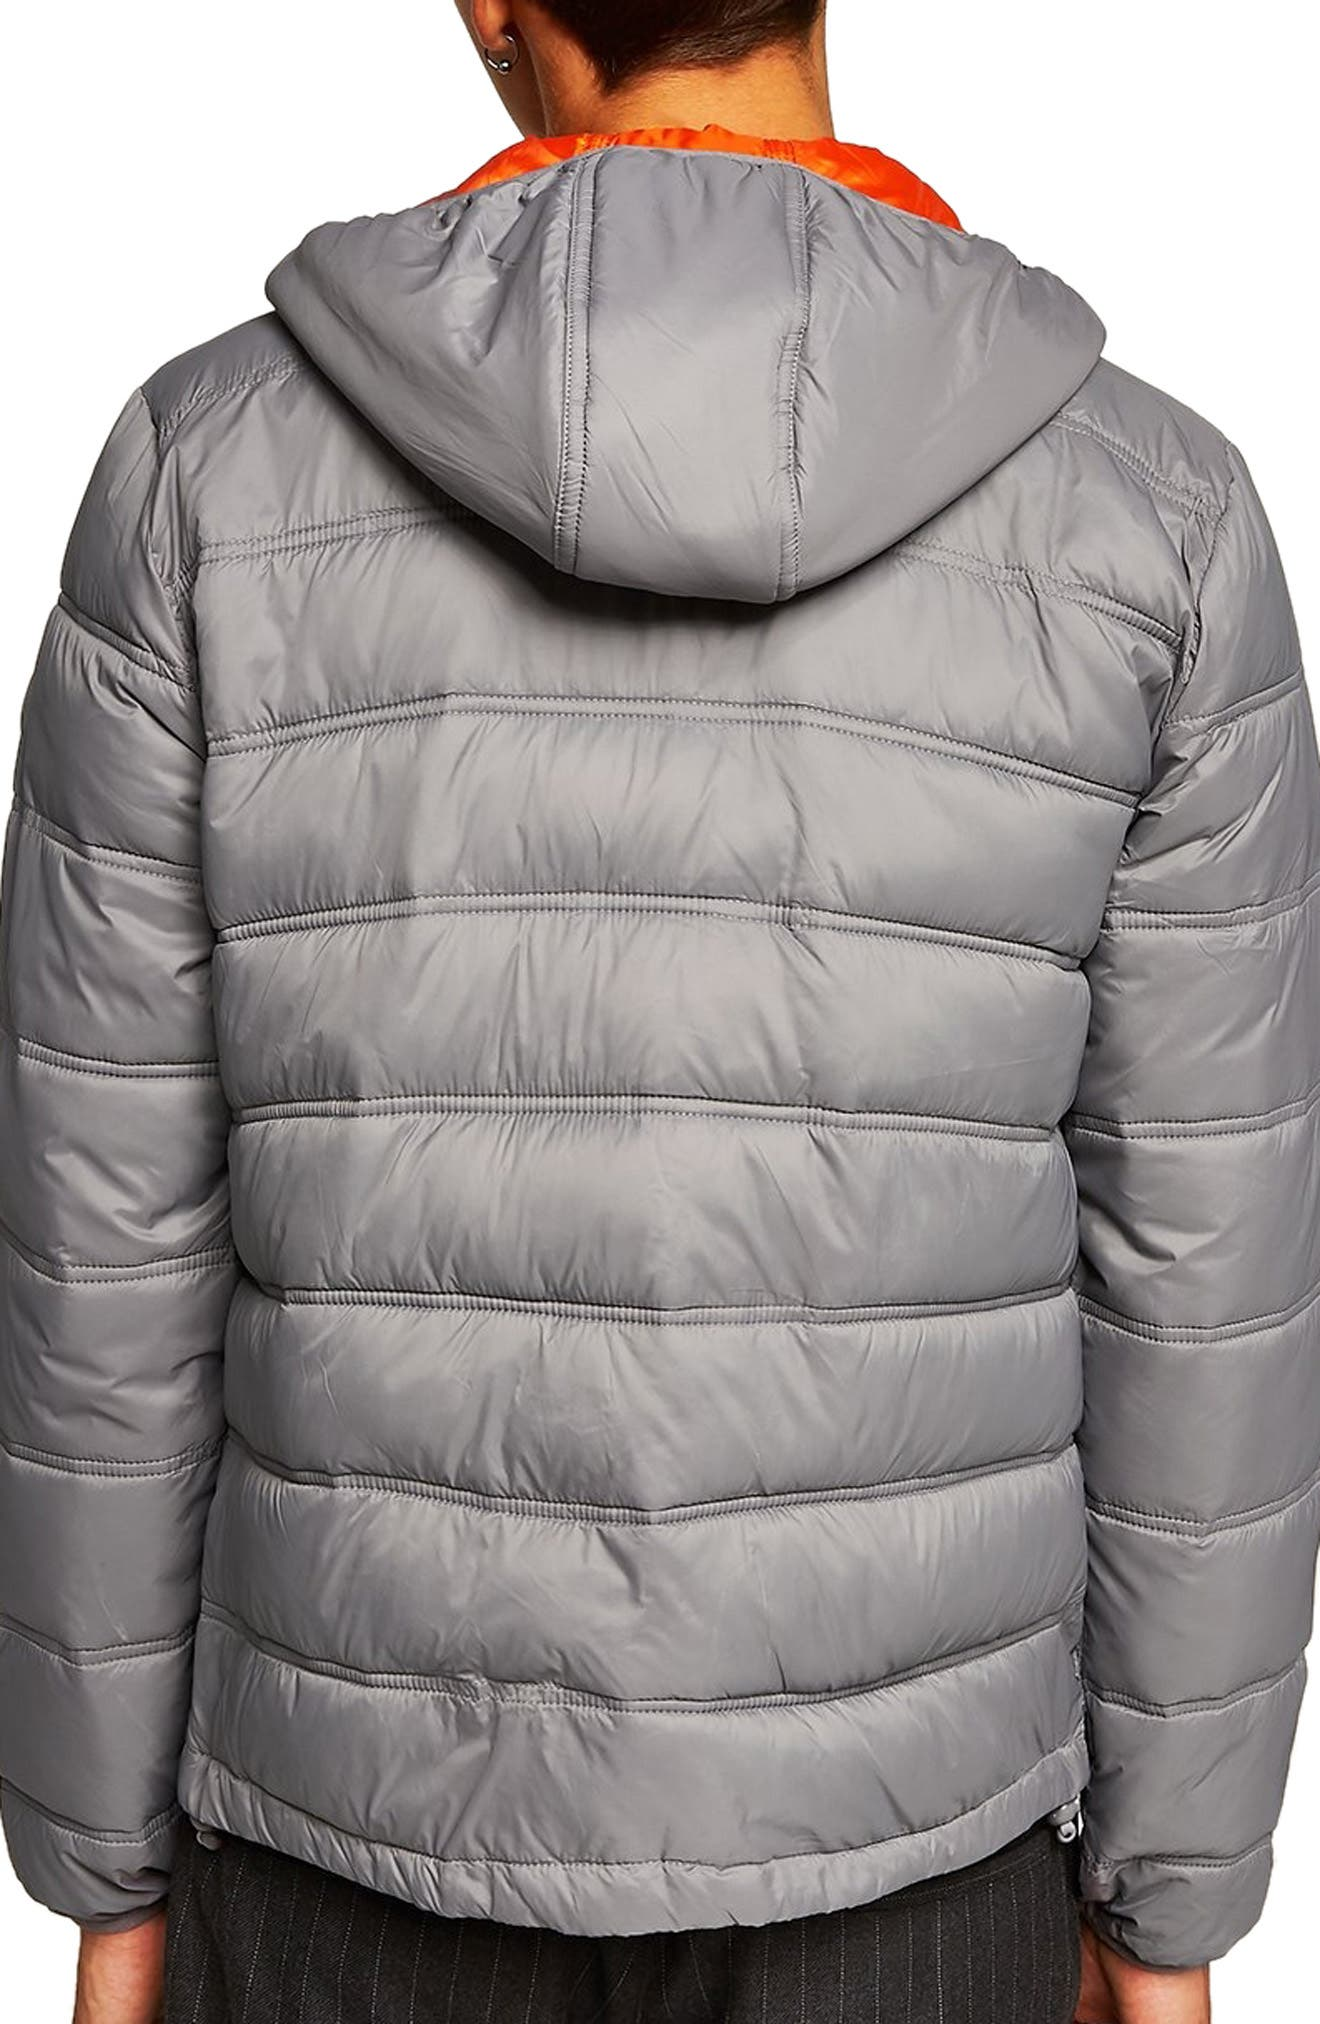 Terrain Classic Fit Quilted Jacket,                             Main thumbnail 1, color,                             LIGHT GREY